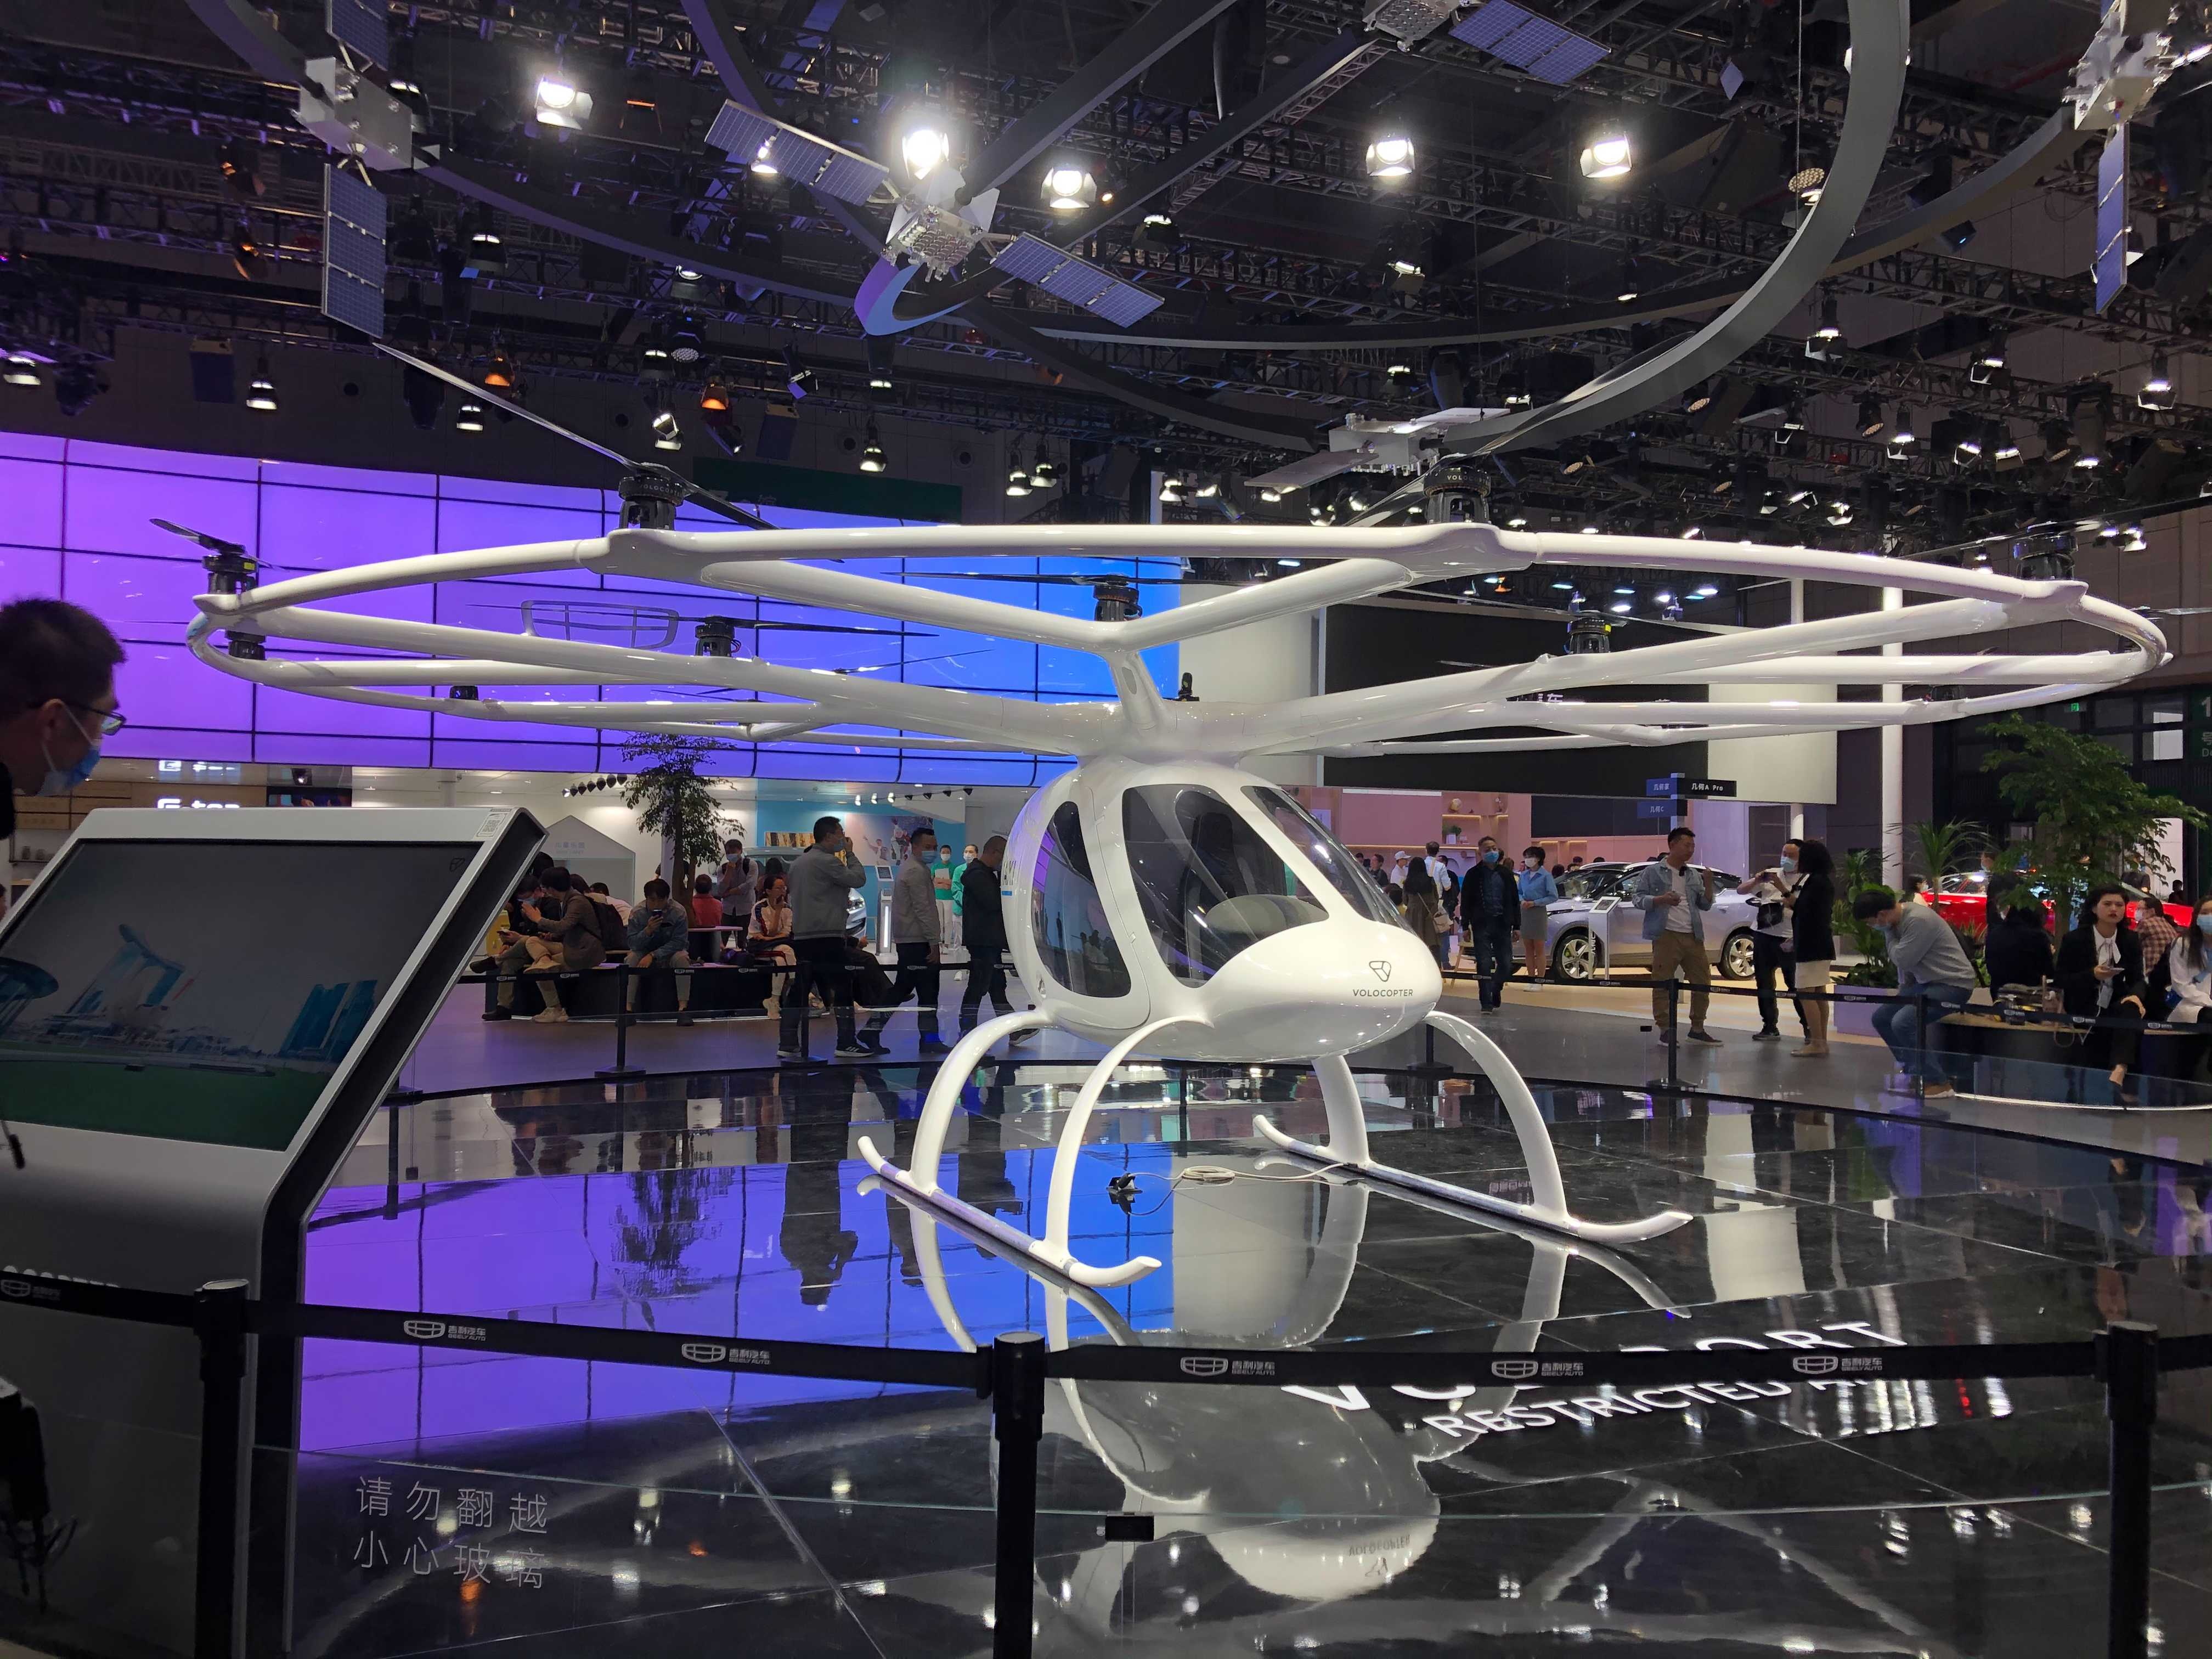 Automakers show off flying cars in Shanghai — but Warren Buffett-backed BYD stays clear